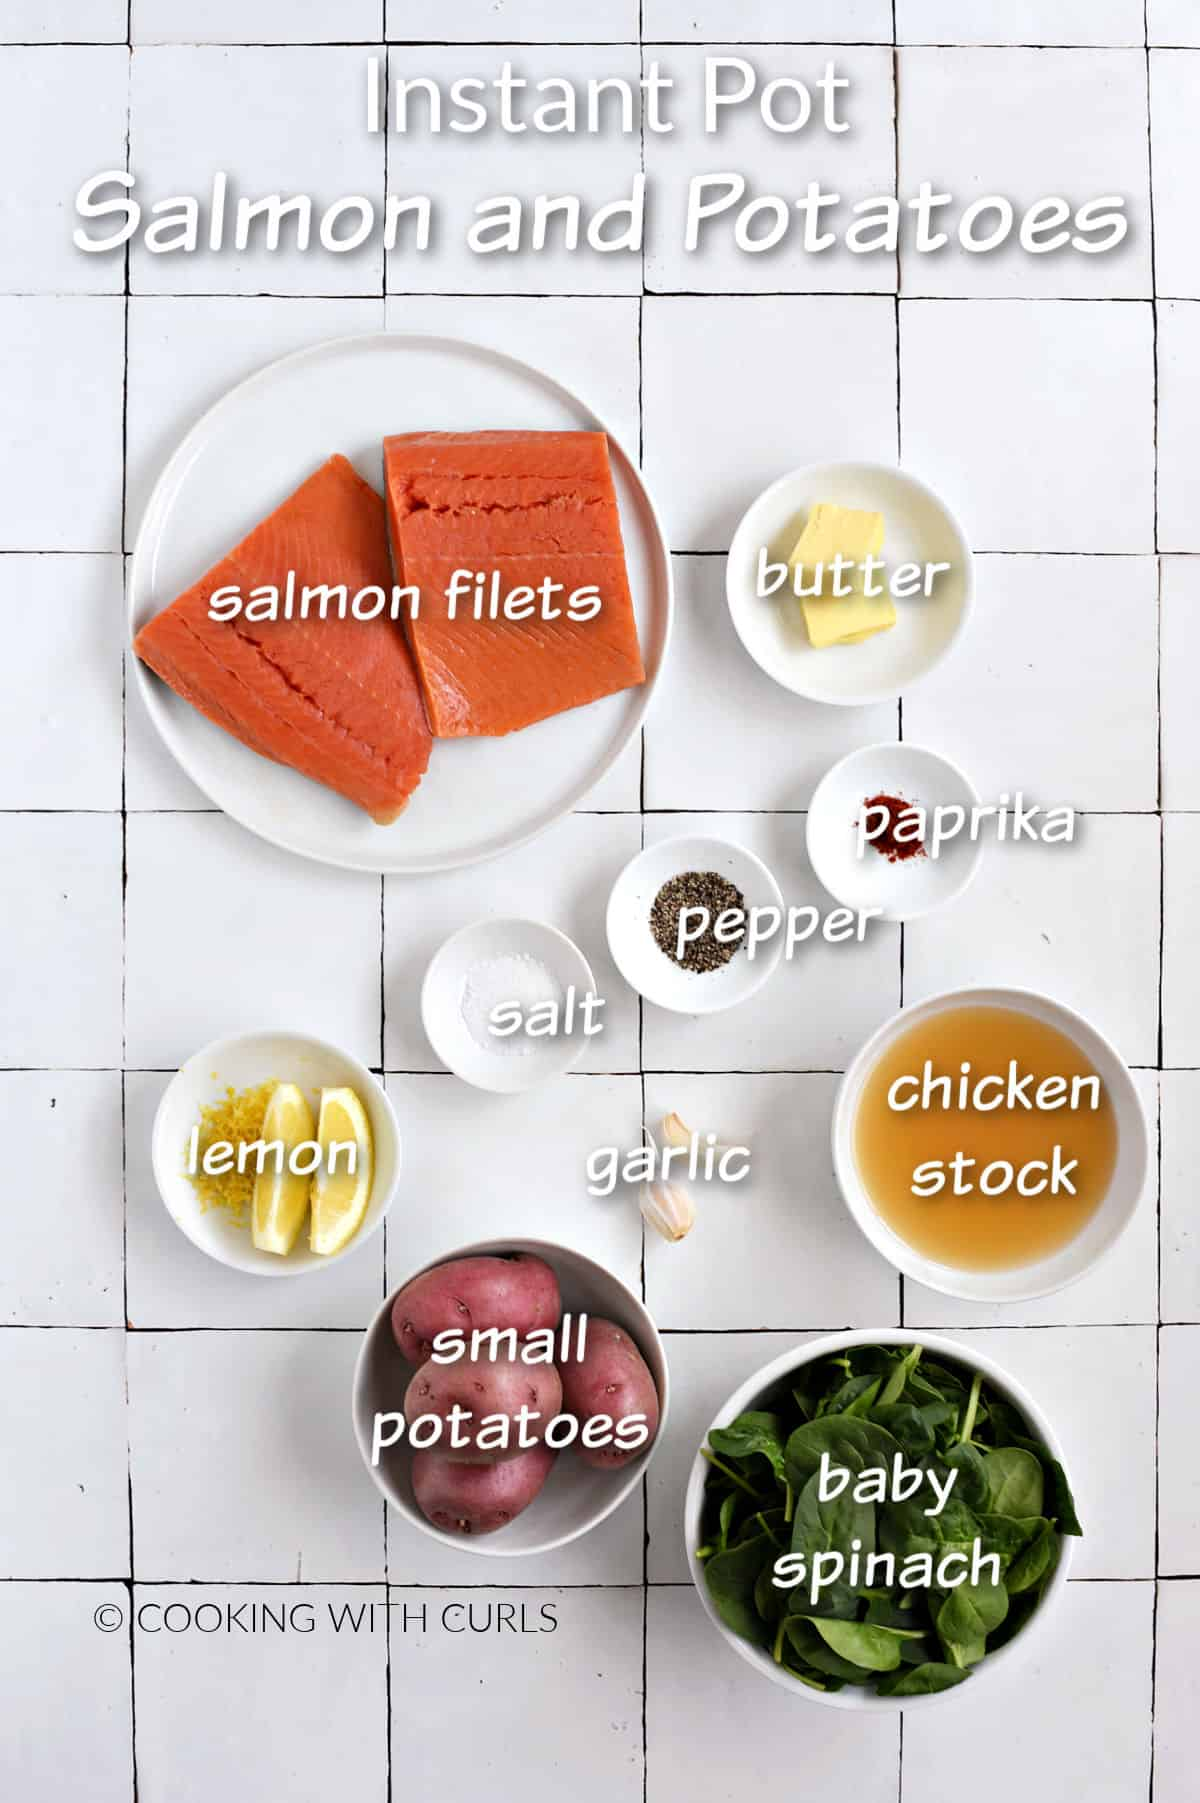 Instant Pot Salmon and Potatoes ingredients on a white tile background.